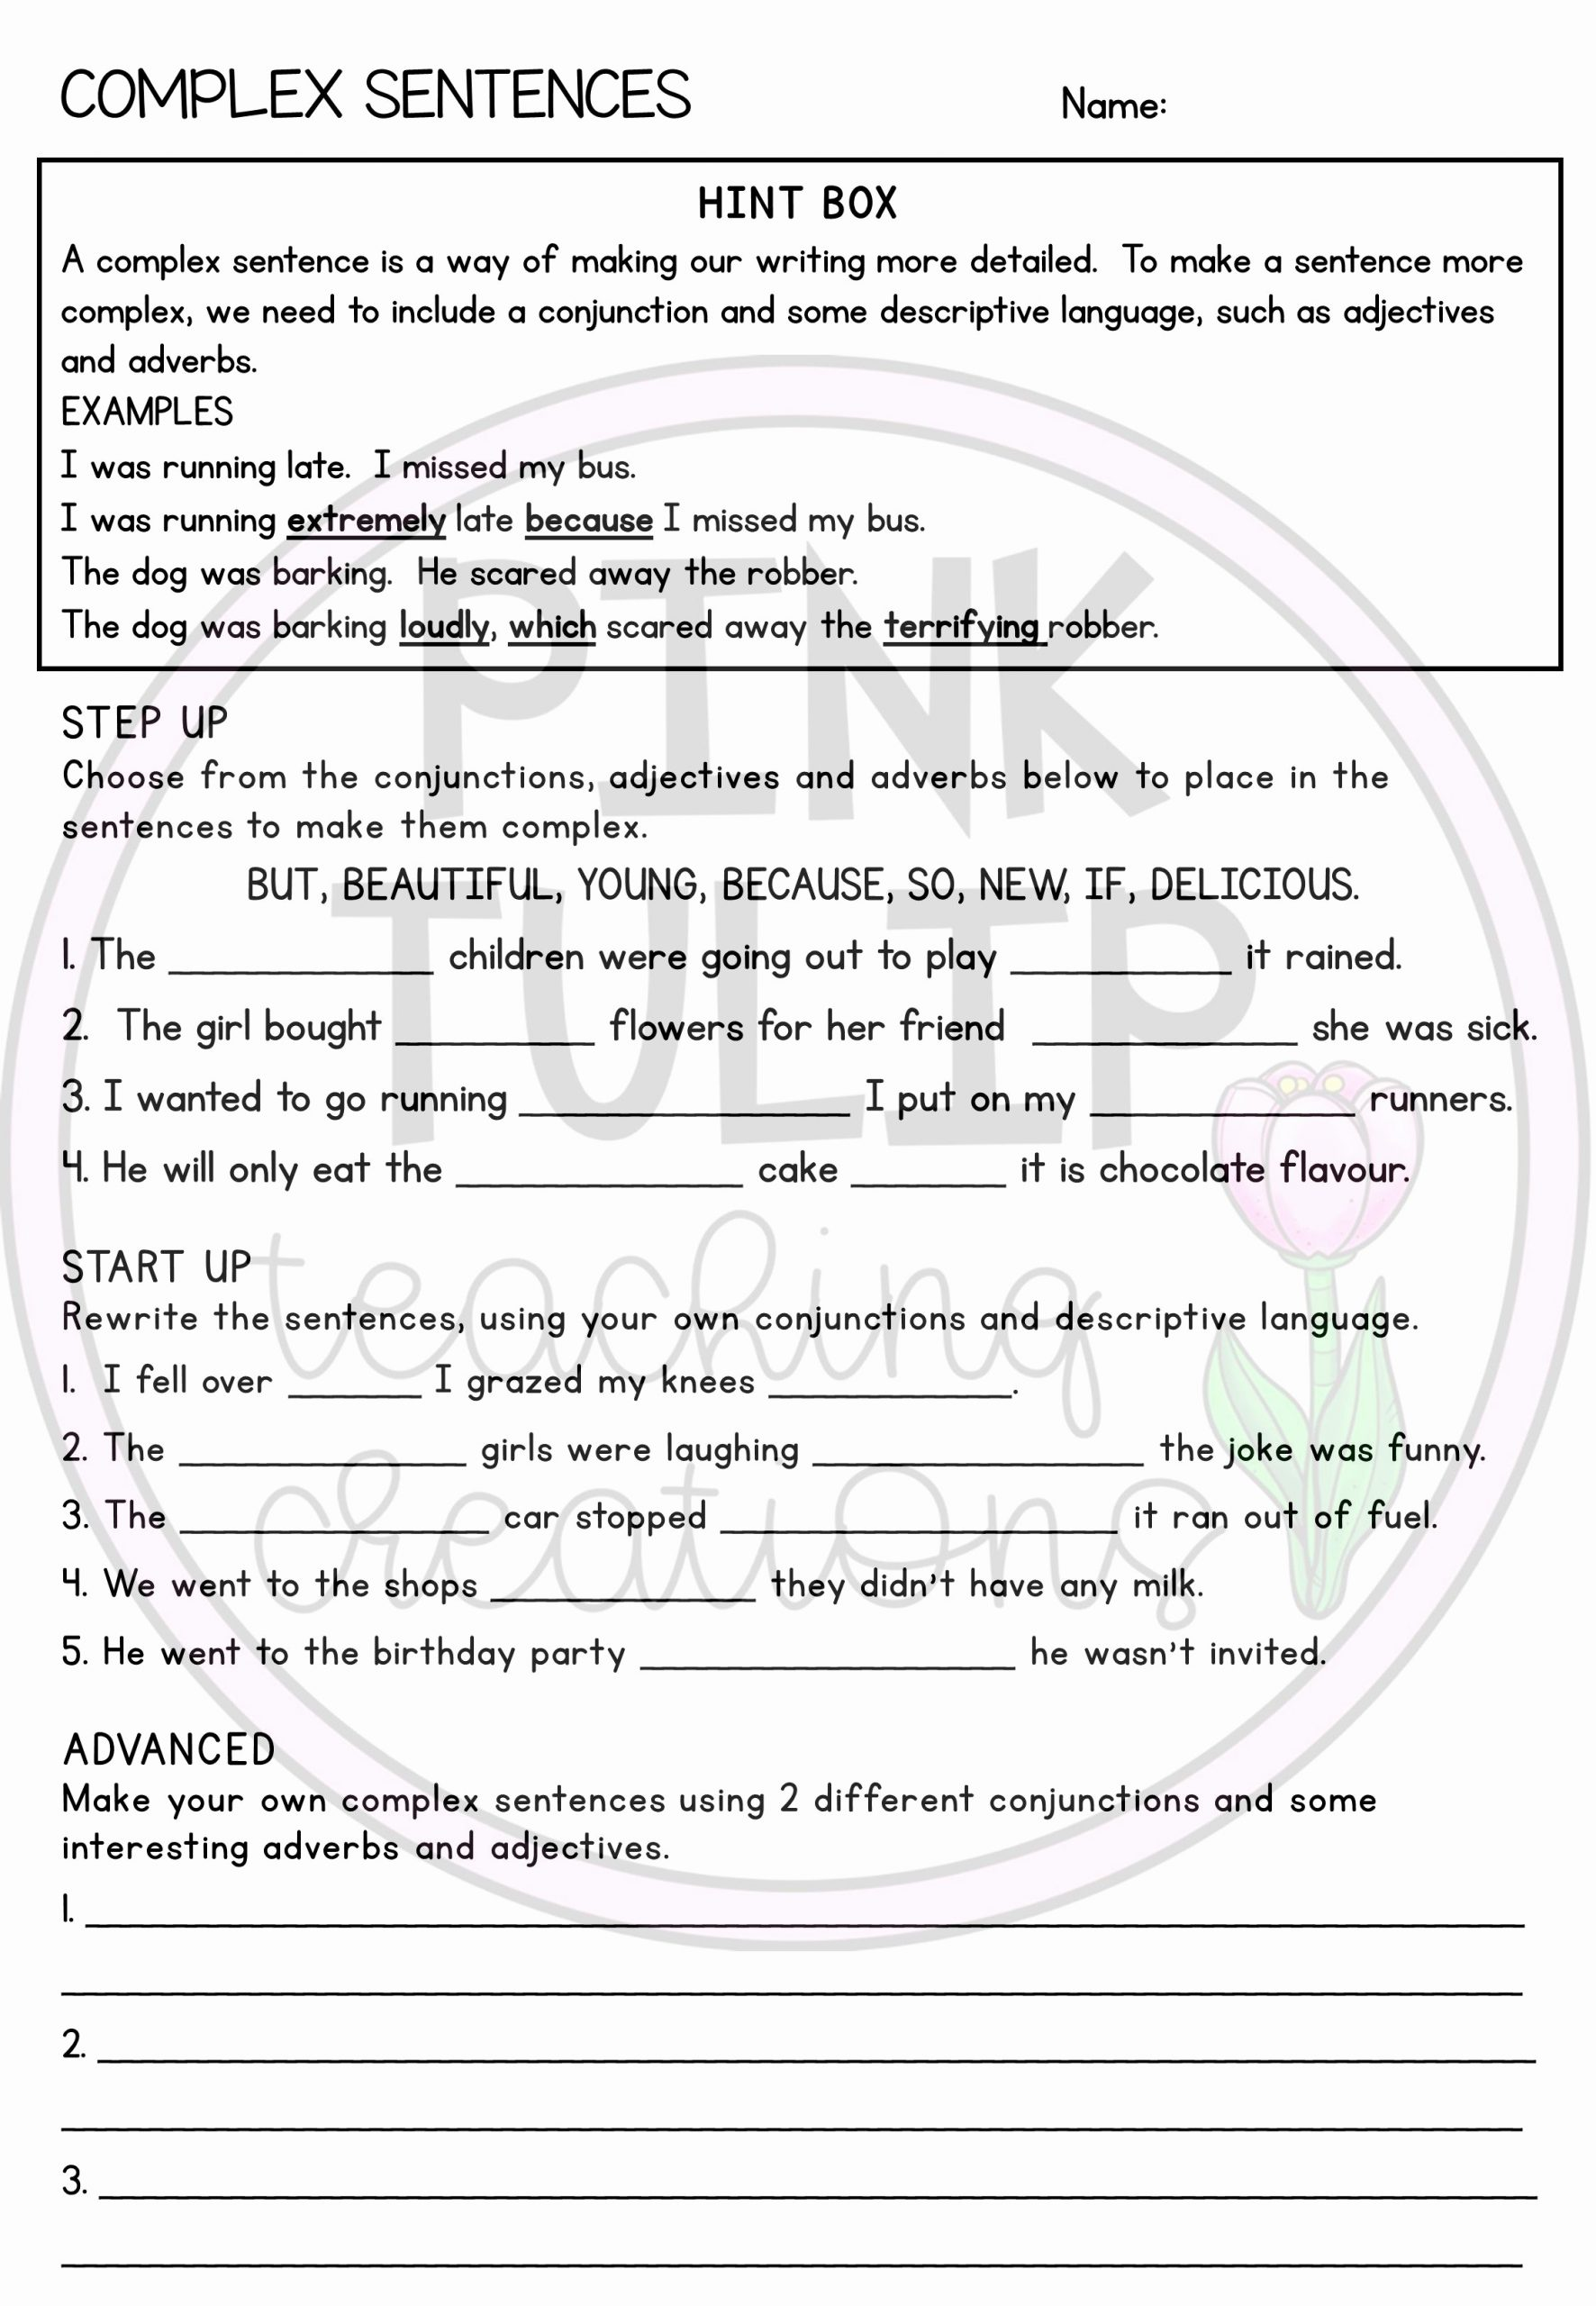 Complex Sentences Worksheets with Answers Elegant Plex Sentences Worksheet